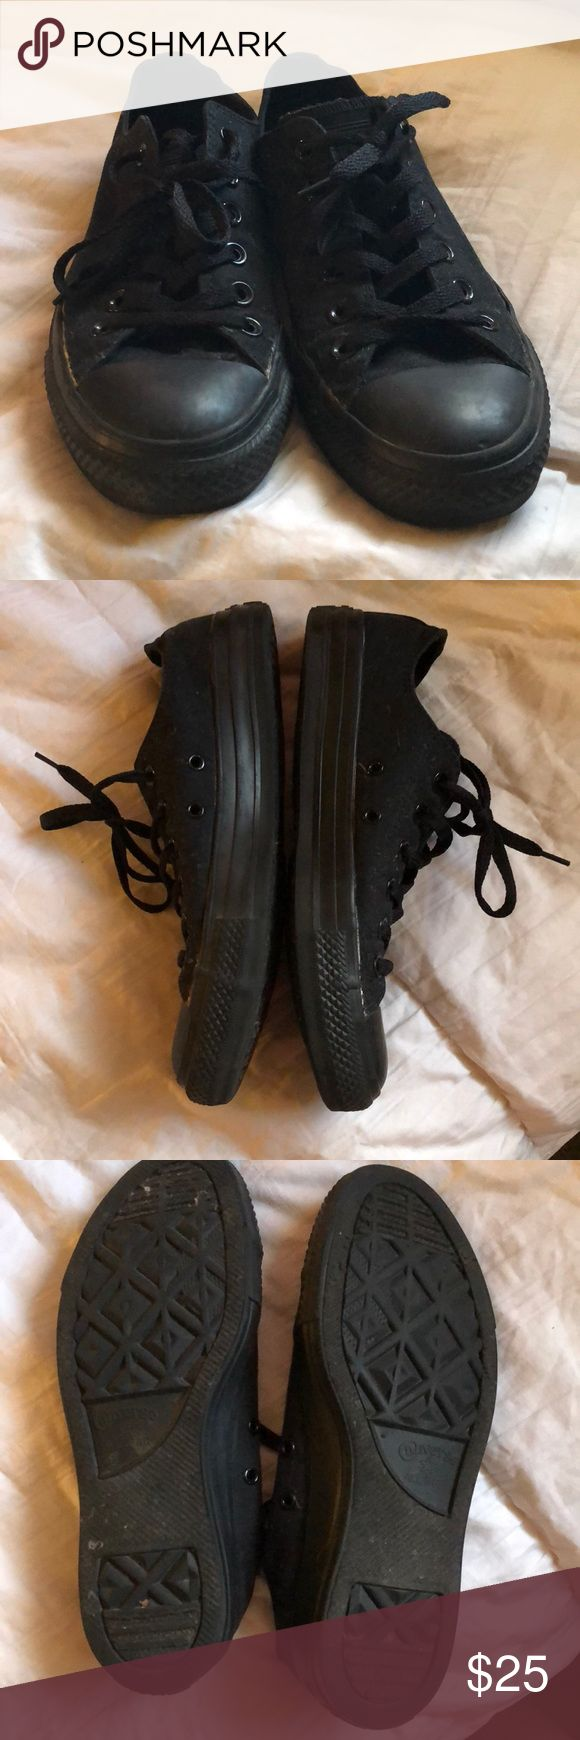 All Black Low Top Converse Cute pair of low top cons. I never wear them! Worn maybe 5 times, don't have the box though. Alittle faded but really not too bad. Size 8 in women's. Just sitting in a smoke and pet free home! Converse Shoes Sneakers